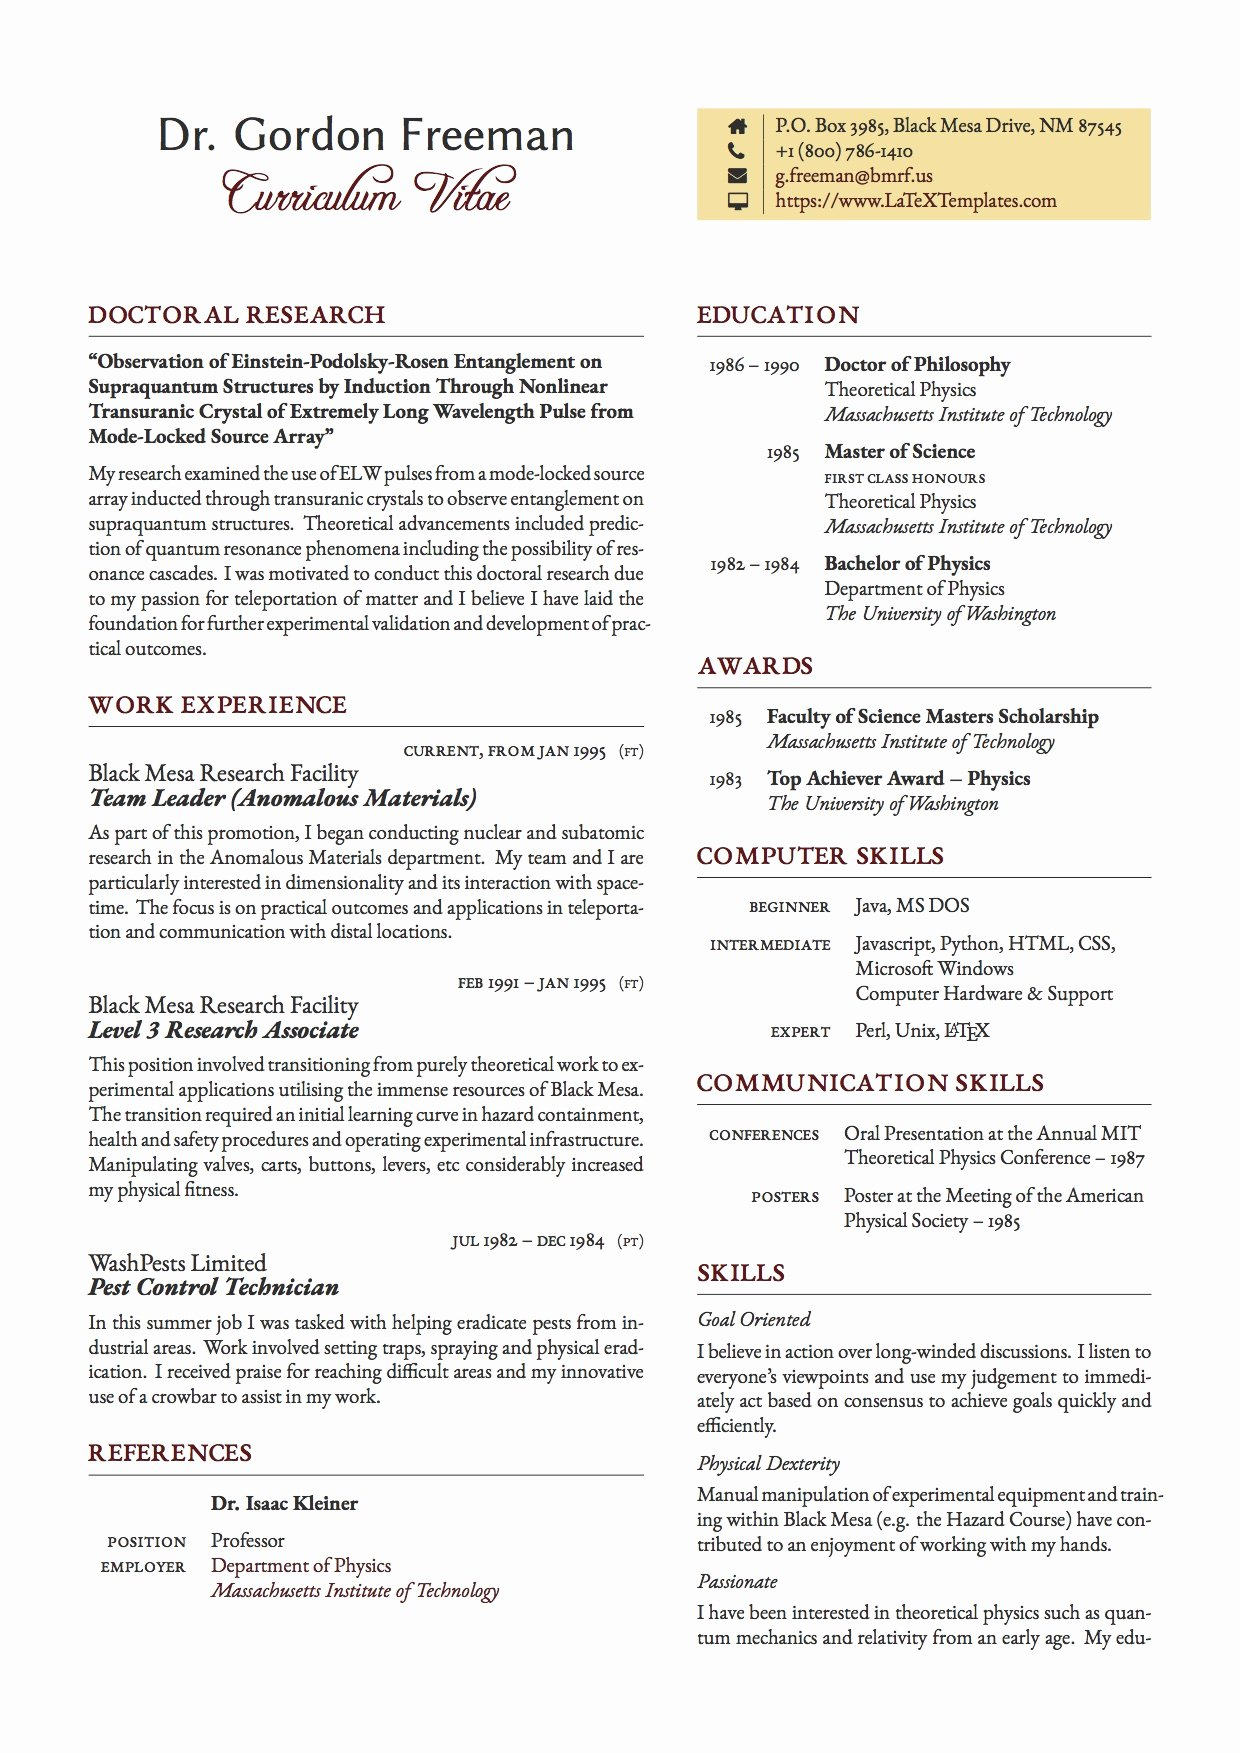 Format for Curriculum Vitae New Latex Templates Curricula Vitae Résumés